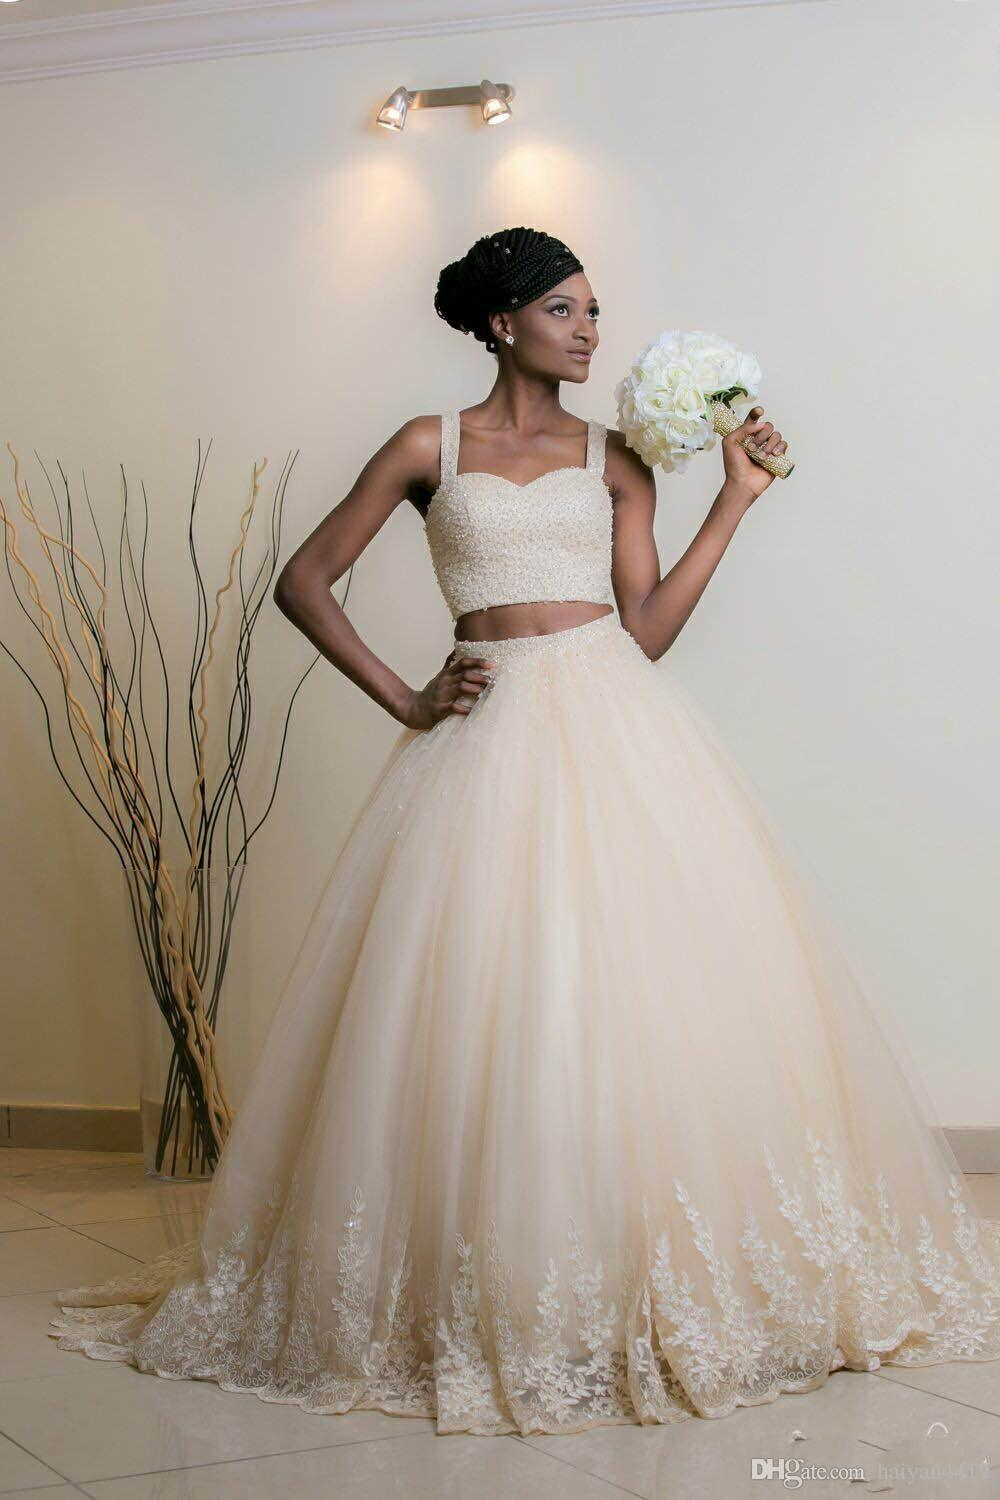 2017 New African Two Pieces Ball Gown Wedding Dresses Spaghetti Straps Bling Crystal Beaded Lace Appliques Long Plus Size Formal Bridal Gown